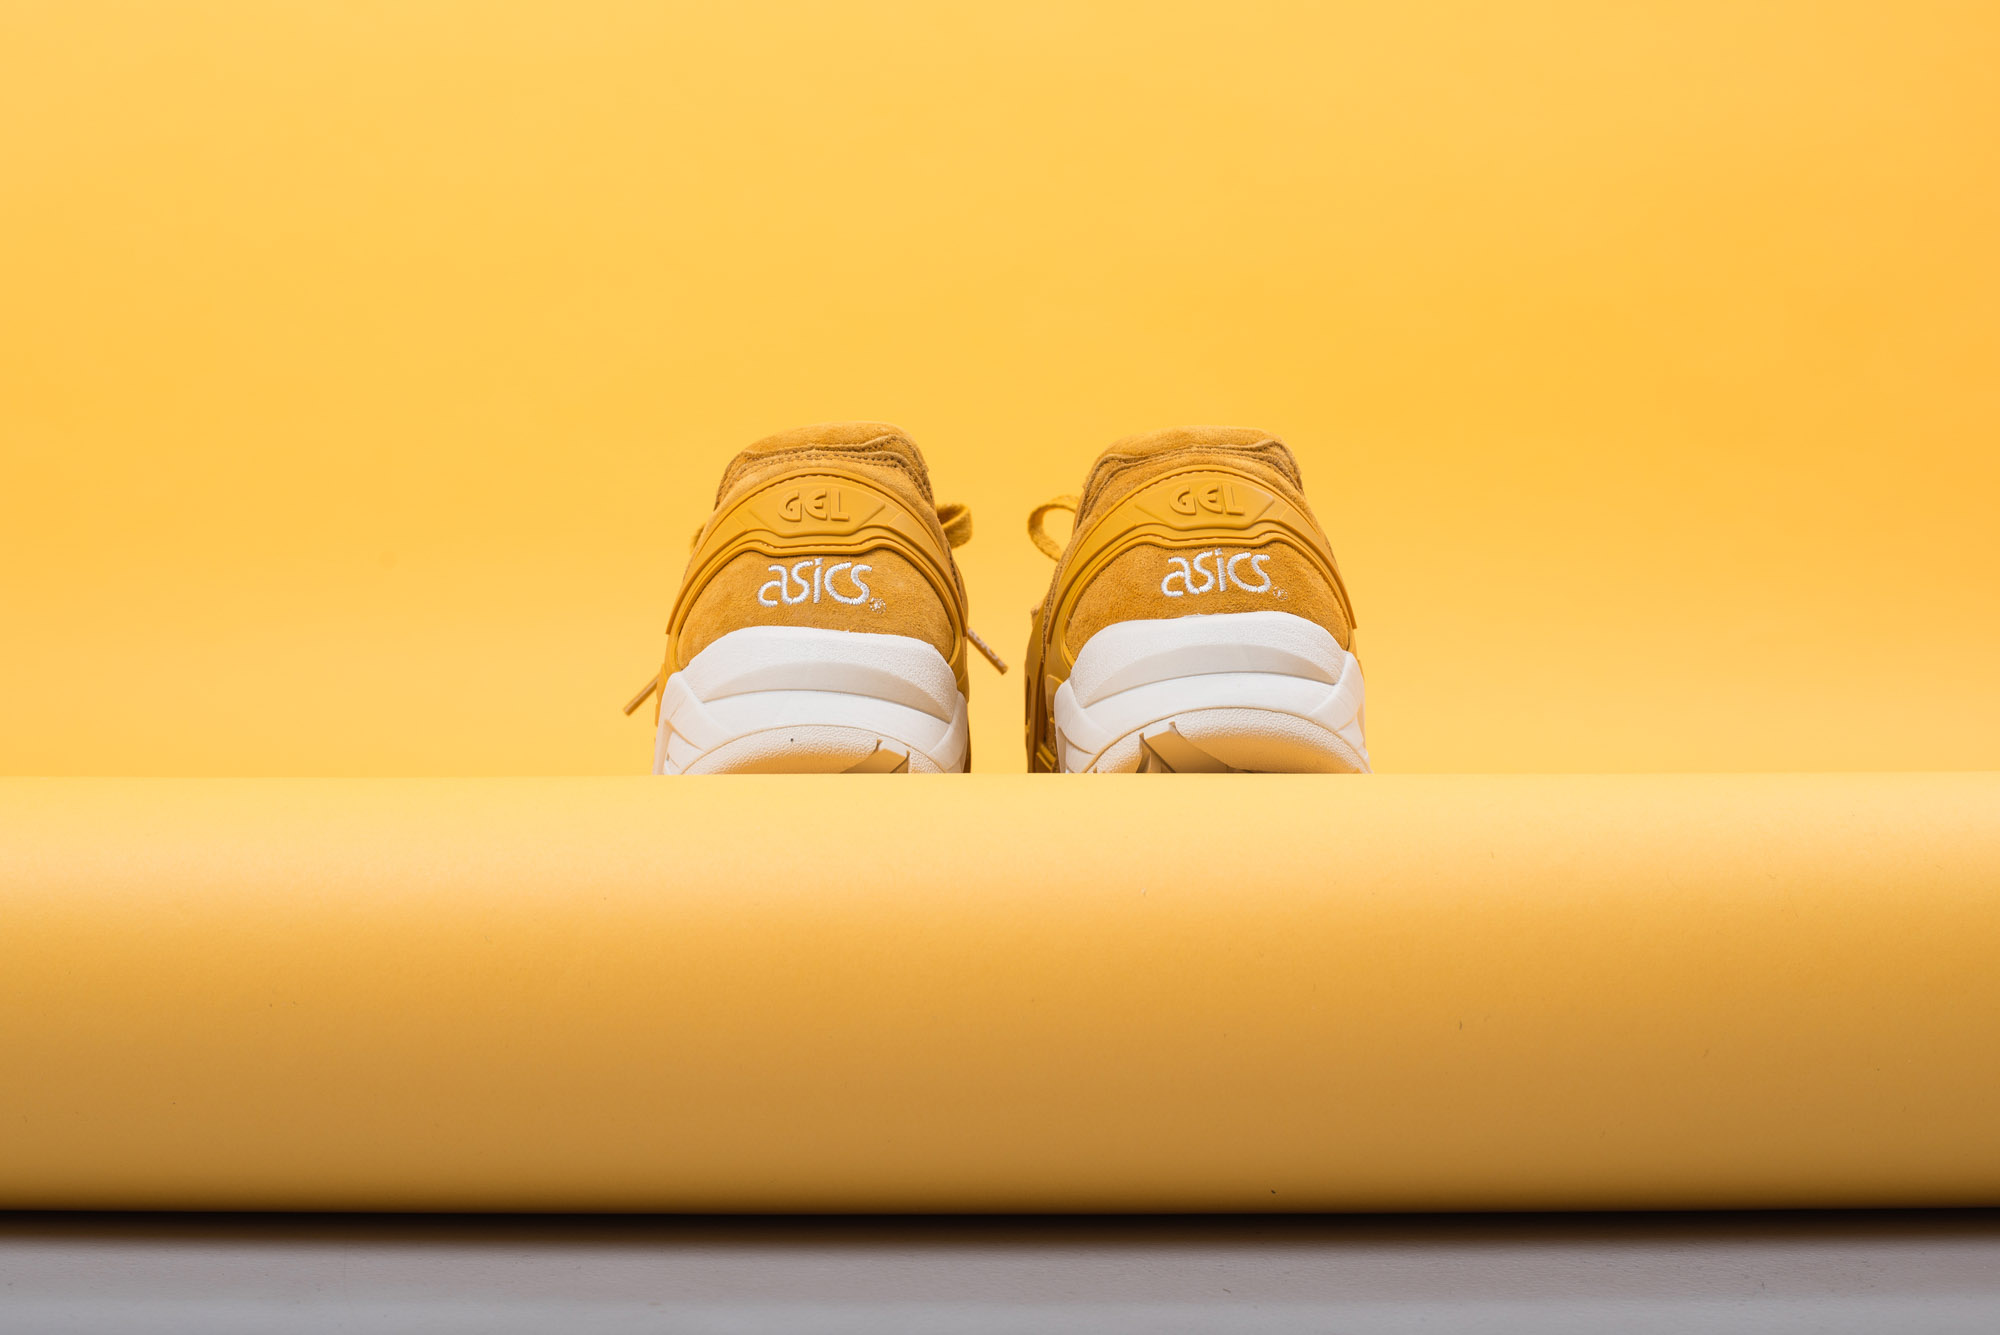 asics Tiger Gel Kayano Trainer Golden Yellow Agave Green 2